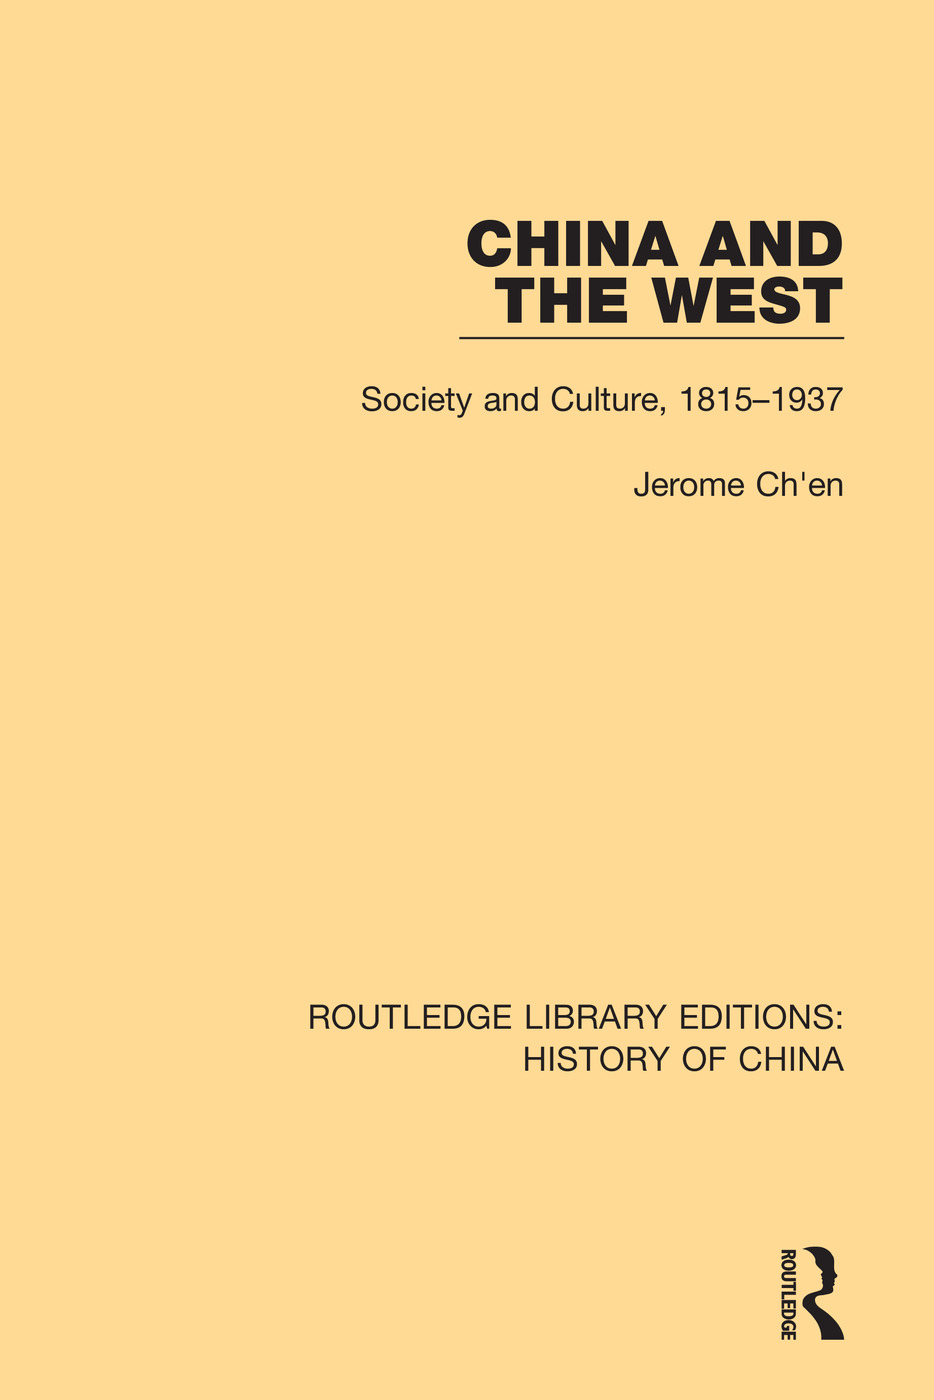 China and the West: Society and Culture, 1815-1937 book cover